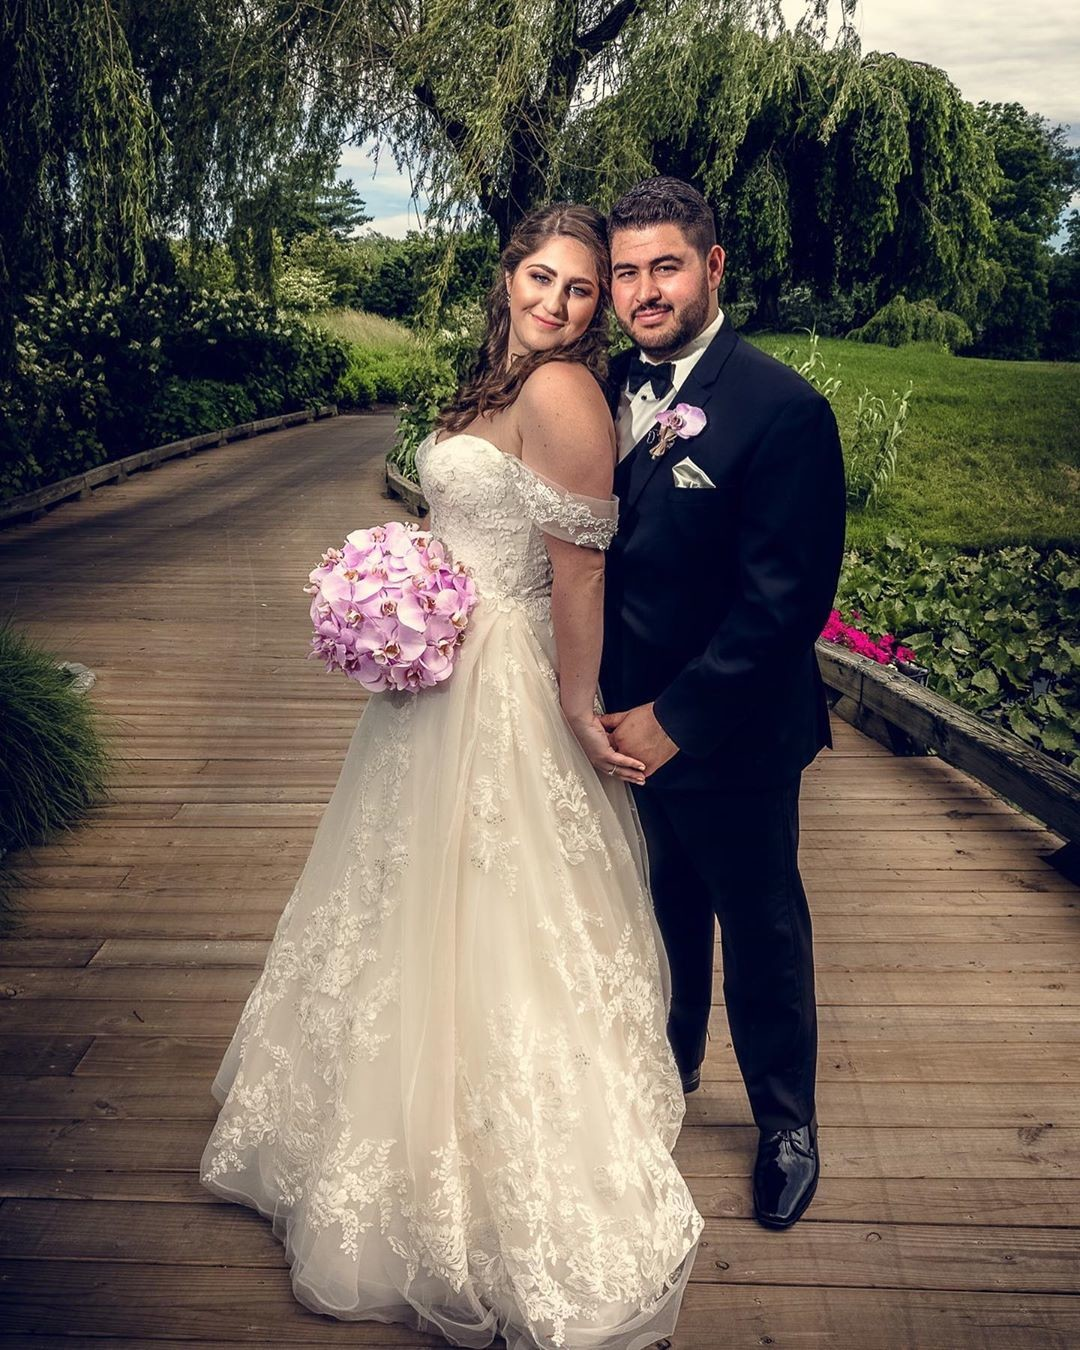 Congrats to Rebecca & Daniel on such a beautiful, fun and exciting Russian-Jewish wedding at The Talamore Country Club!!